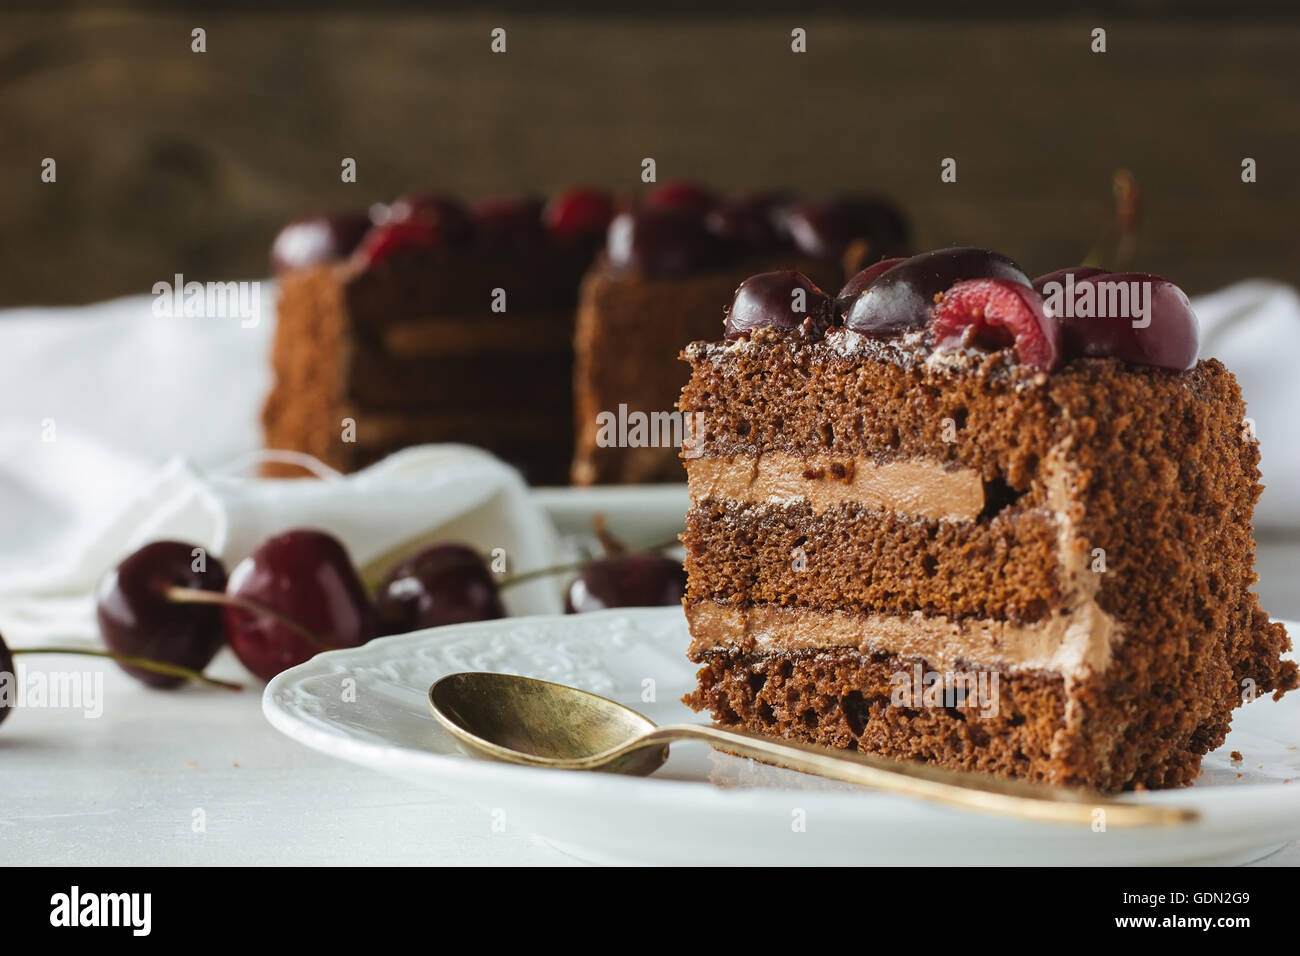 Piece of chocolate cake with berries selective focus - Stock Image